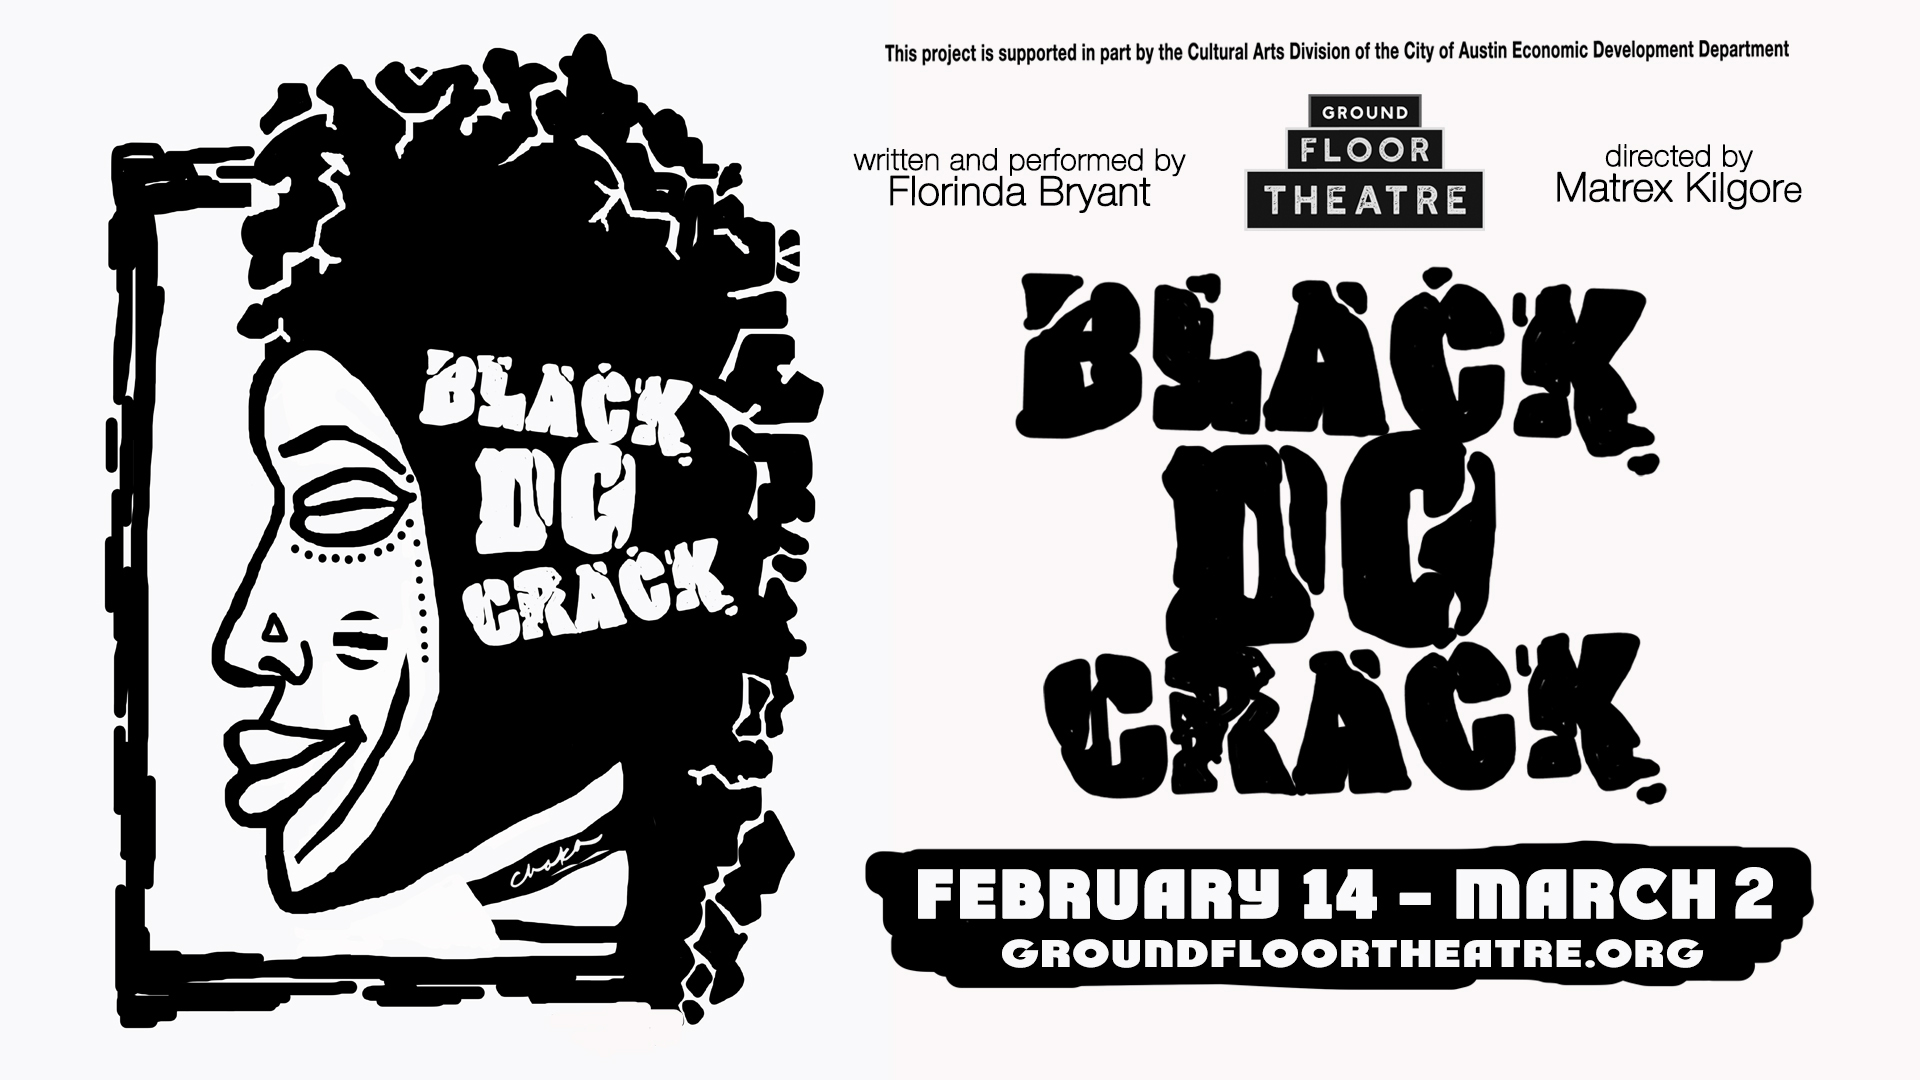 BlackDoCrack_FB_Banner.jpg